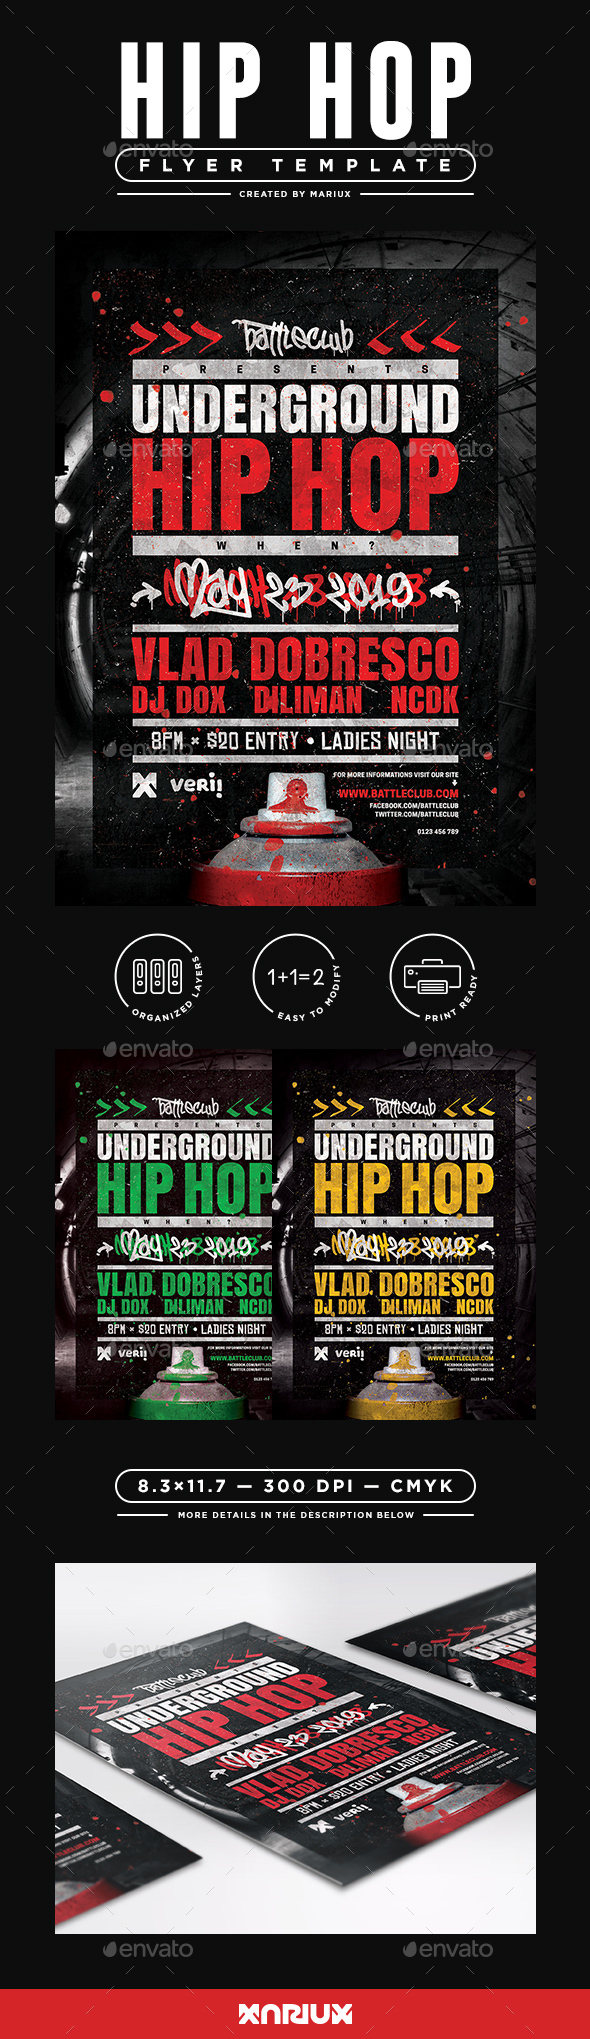 Underground Hip Hop Flyer/Poster - Clubs & Parties Events